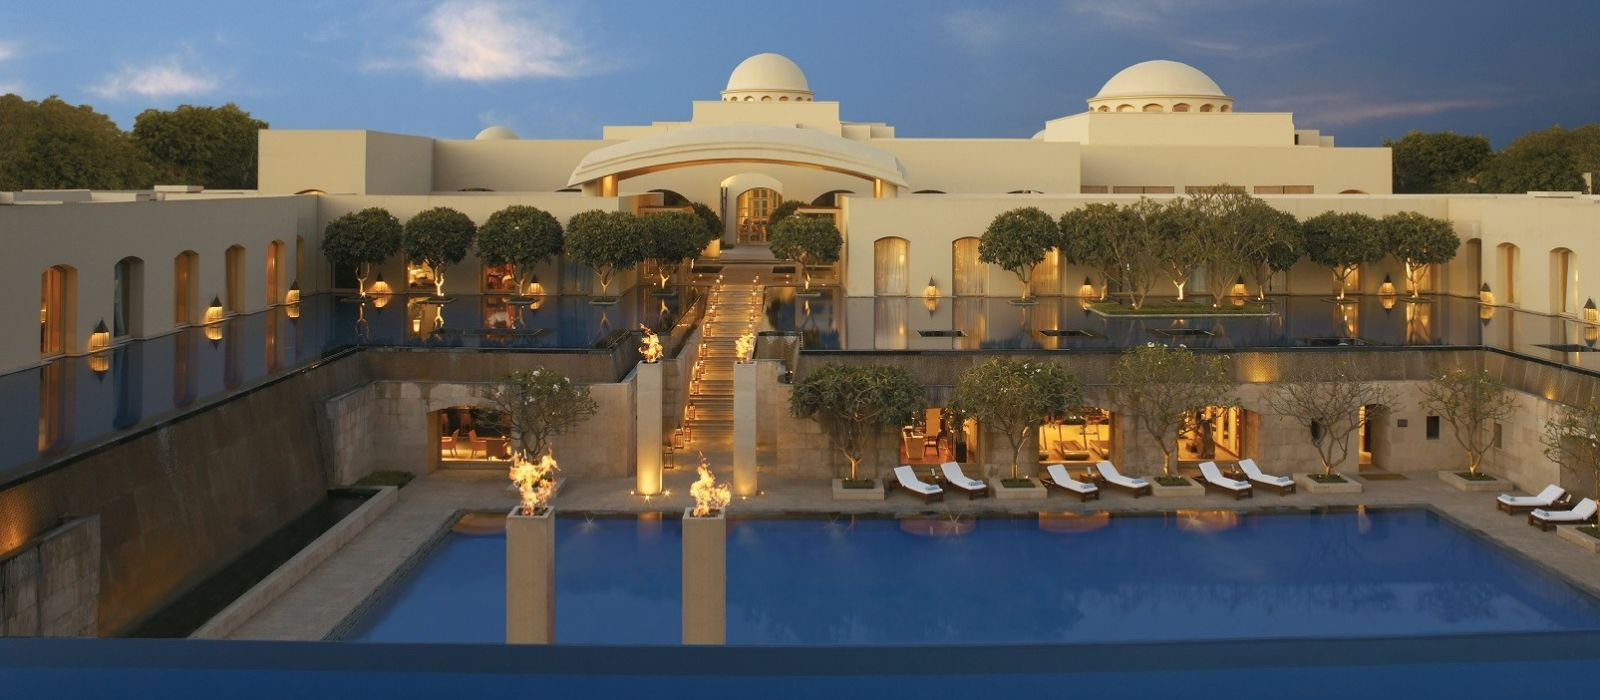 Hotel The Trident Gurgaon Nordindien